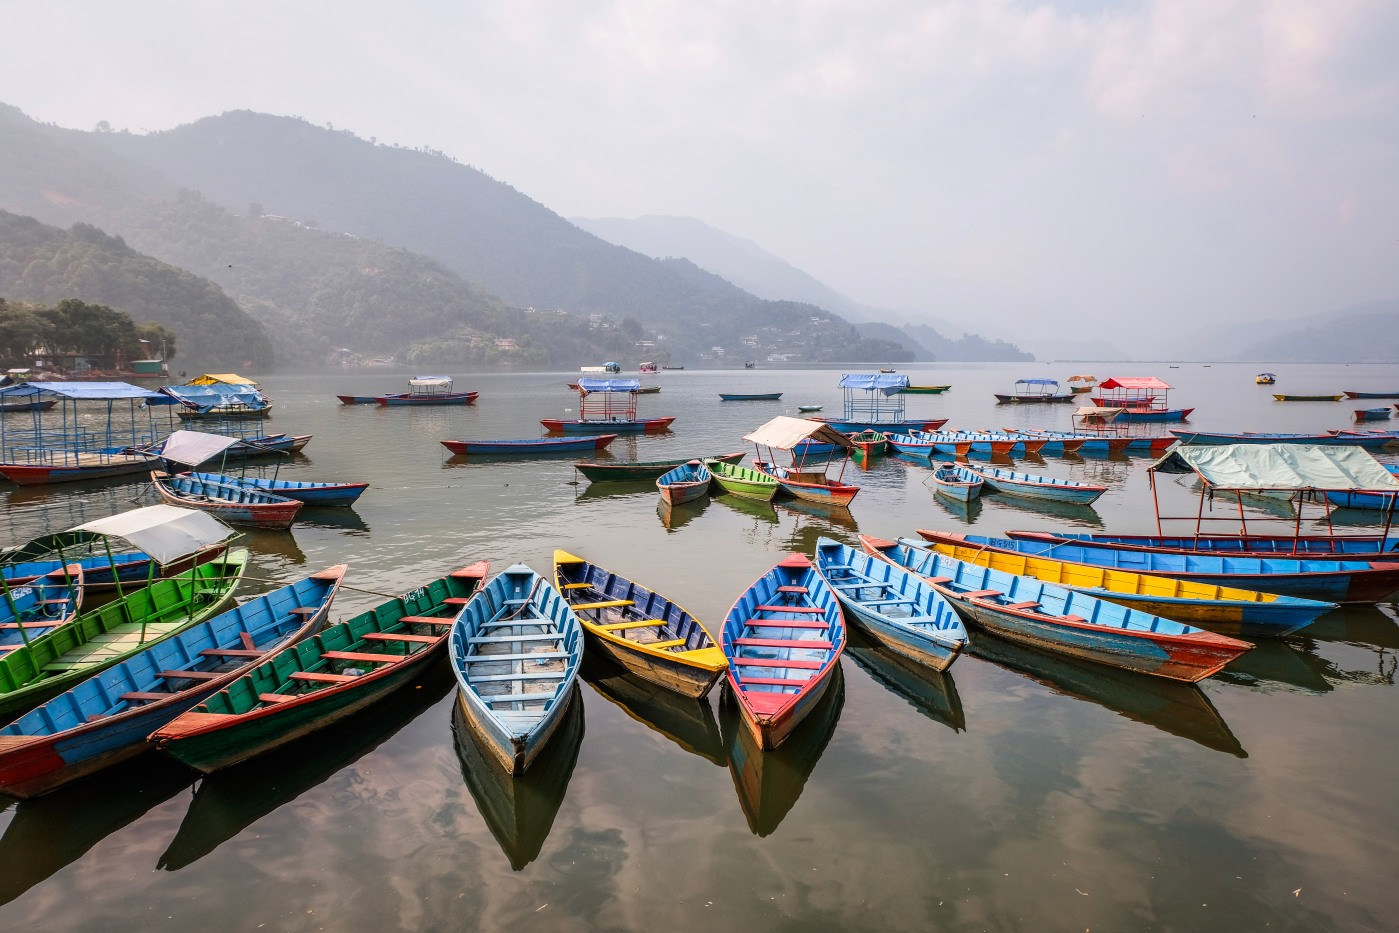 Rest and relaxation in Pokhara